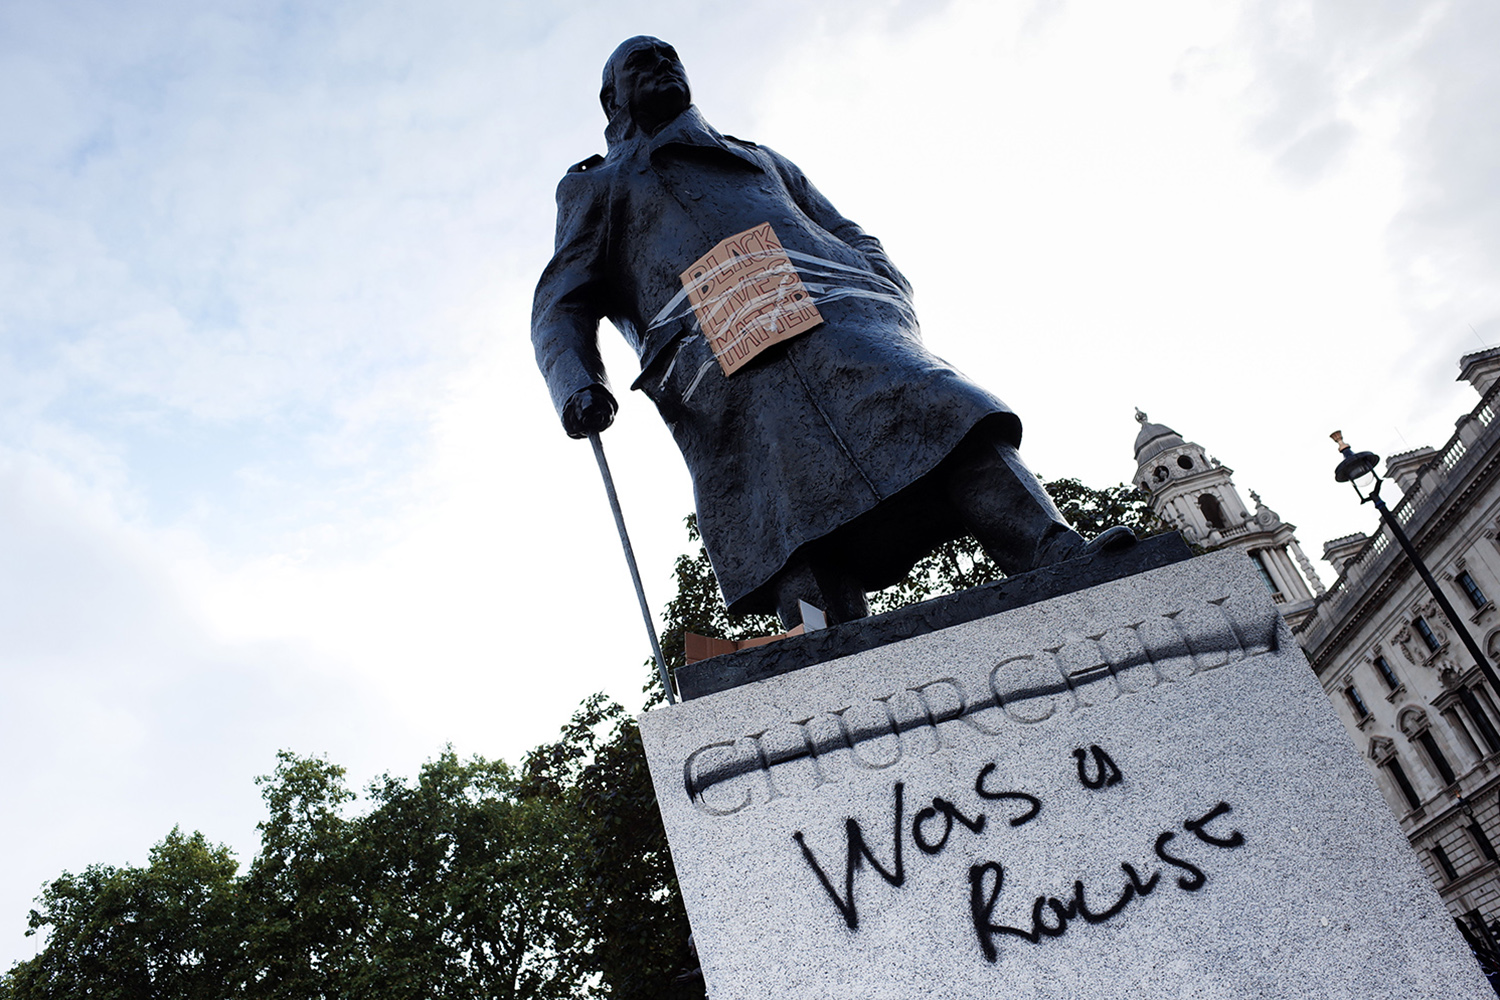 The Parliament Square statue of Britain's wartime leader Winston Churchill stands defaced as activists gather in mass protest against racism in London on June 7.